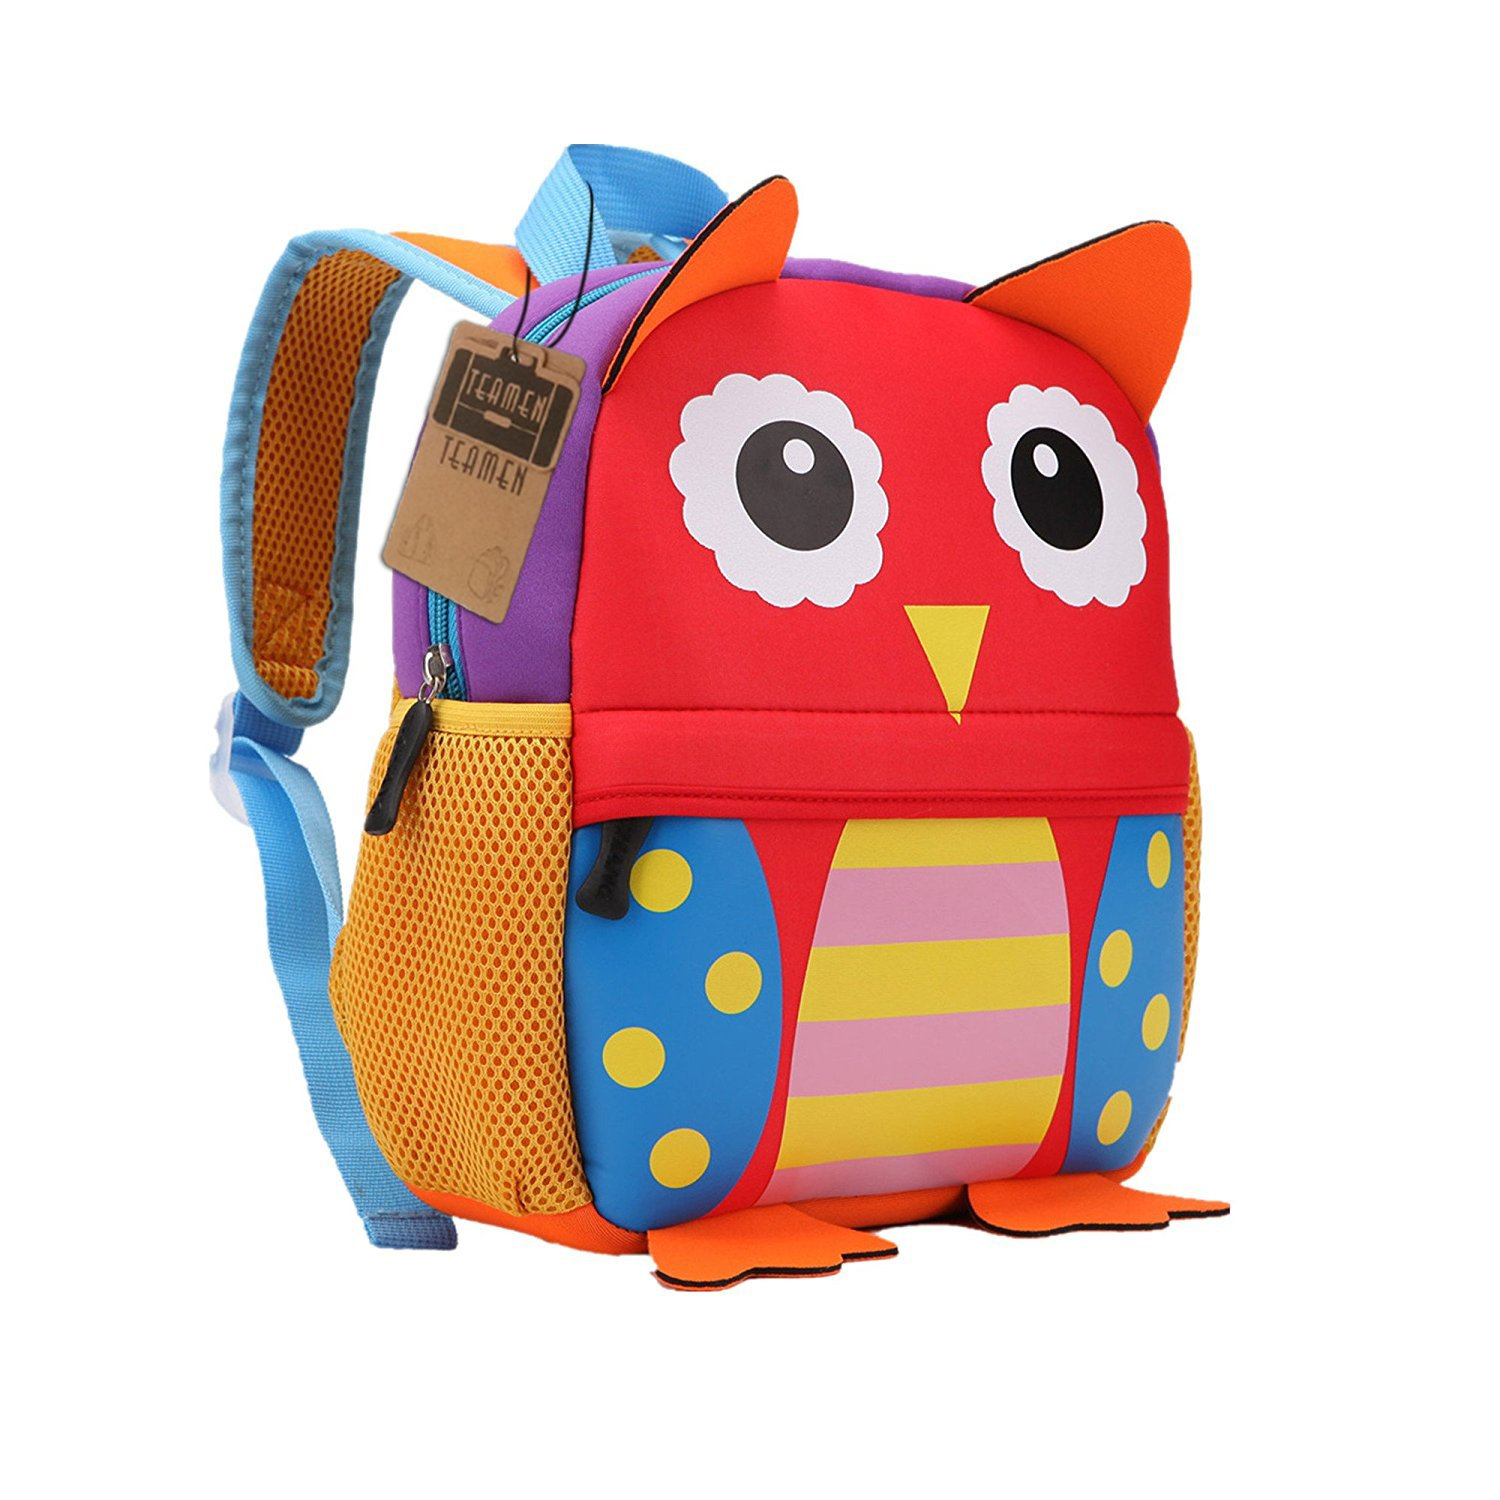 Teamen Children's school backpack, animal design, for children 2-6 years old